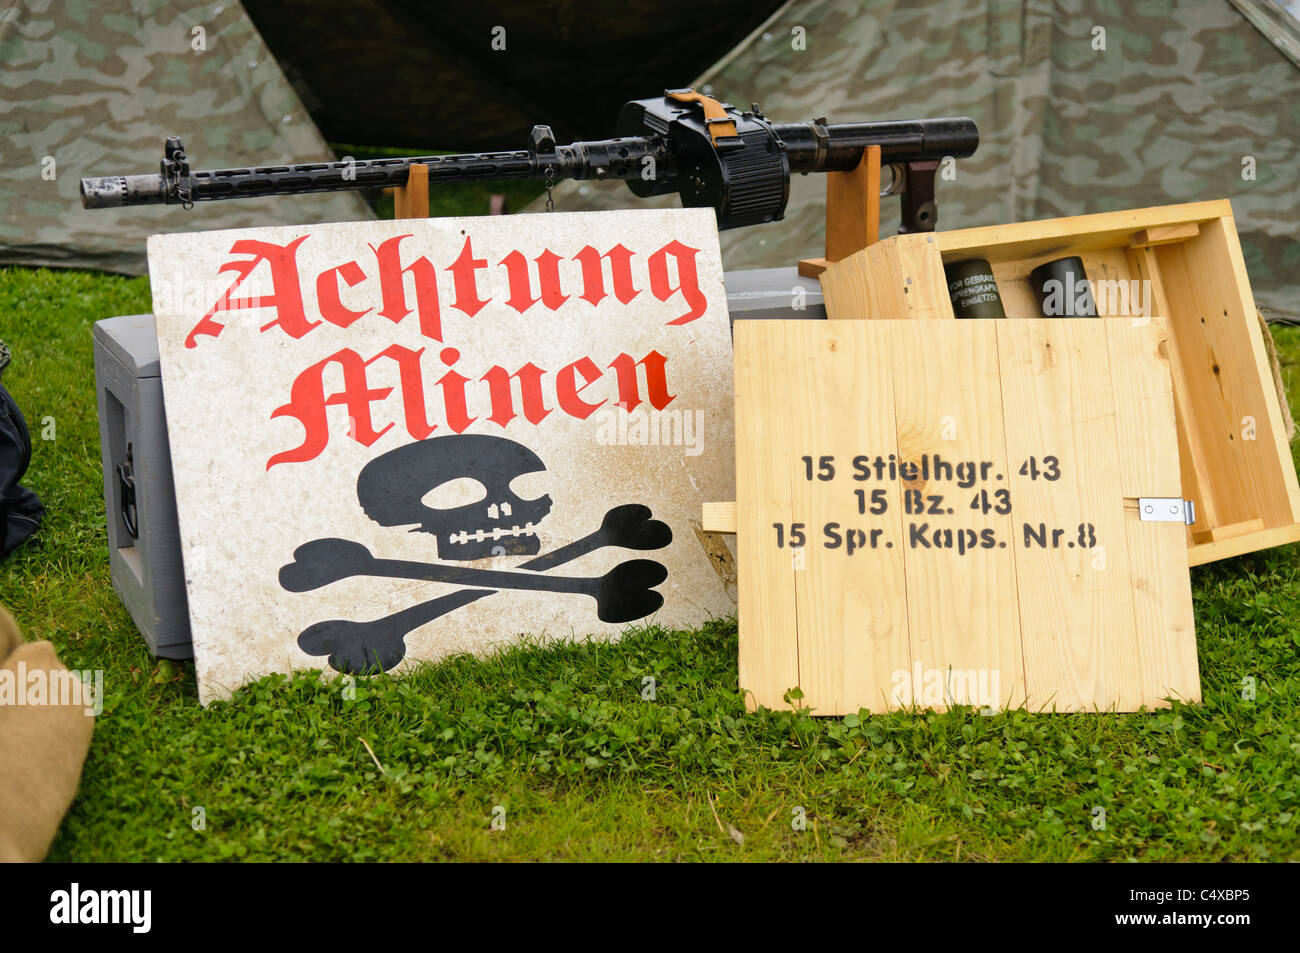 German warning sign for mines (minen) and a box of stick grenades. - Stock Image